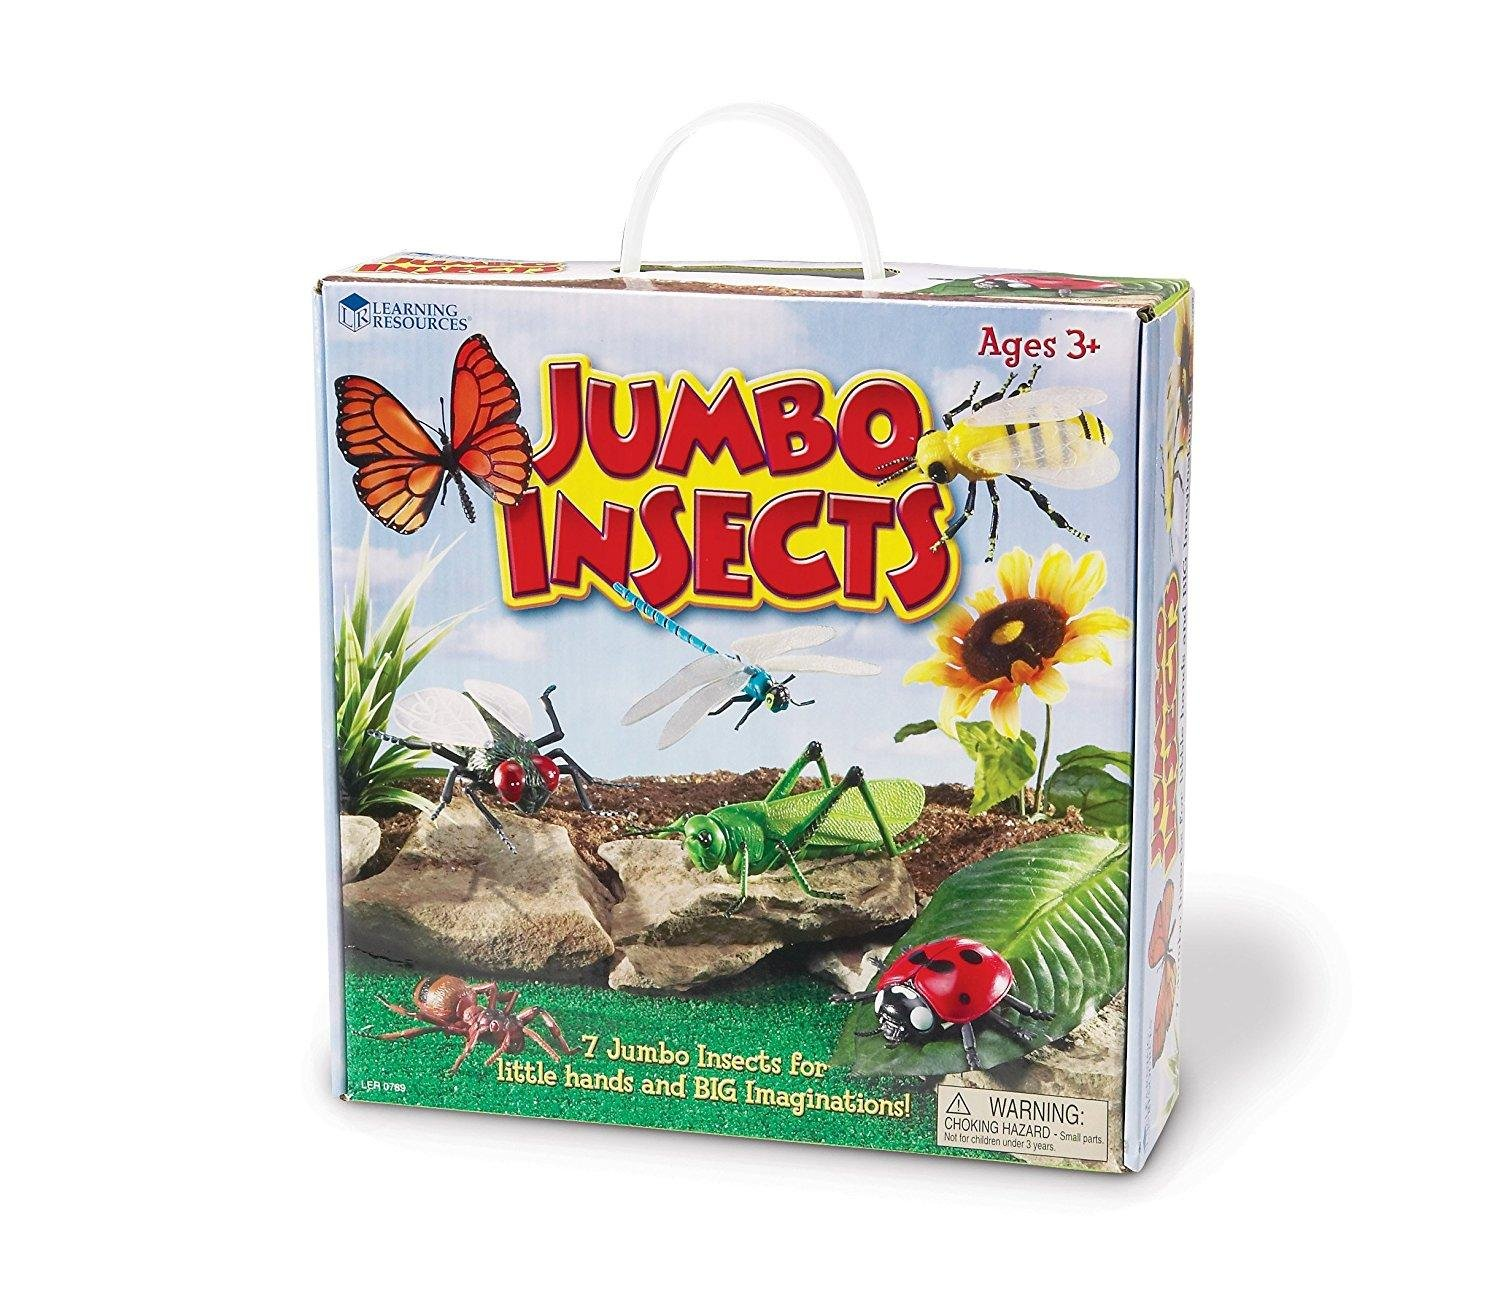 Learning Resources Jumbo Insects, 7-Insects